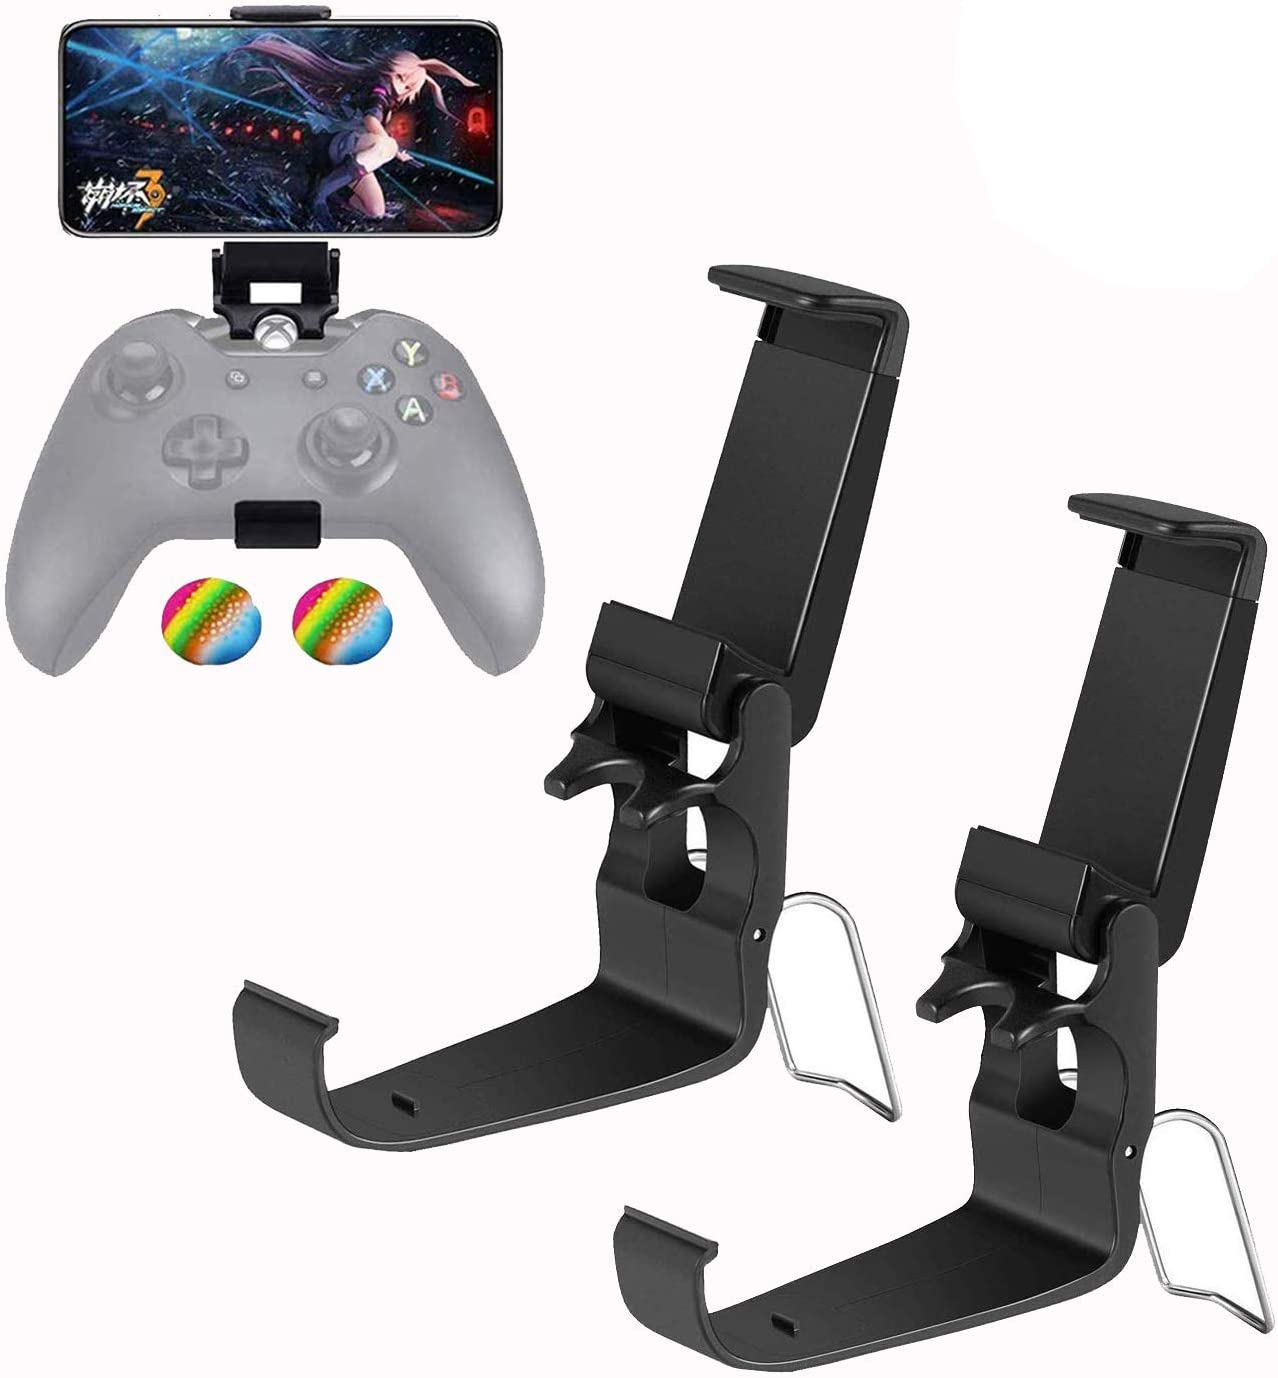 Amazon Com Foldable Mobile Phone Holder Clip For Xbox One Controller Cellphone Clamp Mount Compatible With Xbox One S Xbox One X Steelseries Nimbus Iphone Samsung Sony Lg Huawei Black 2 Pack Electronics